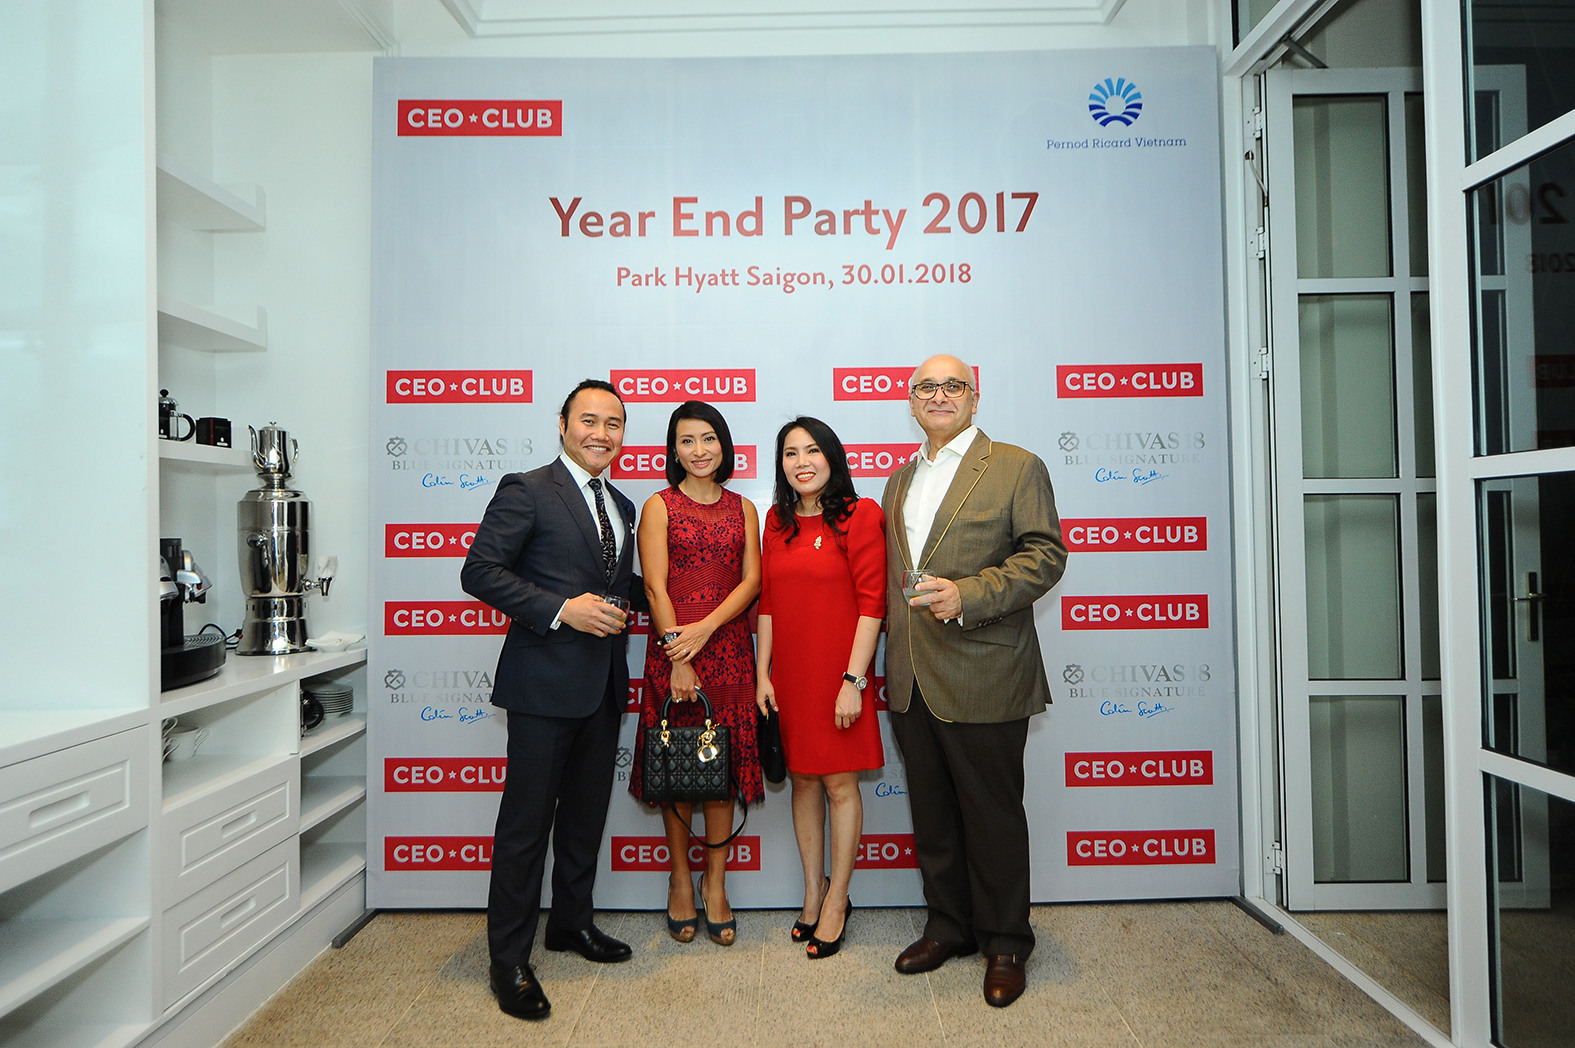 YEAR END PARTY 2017